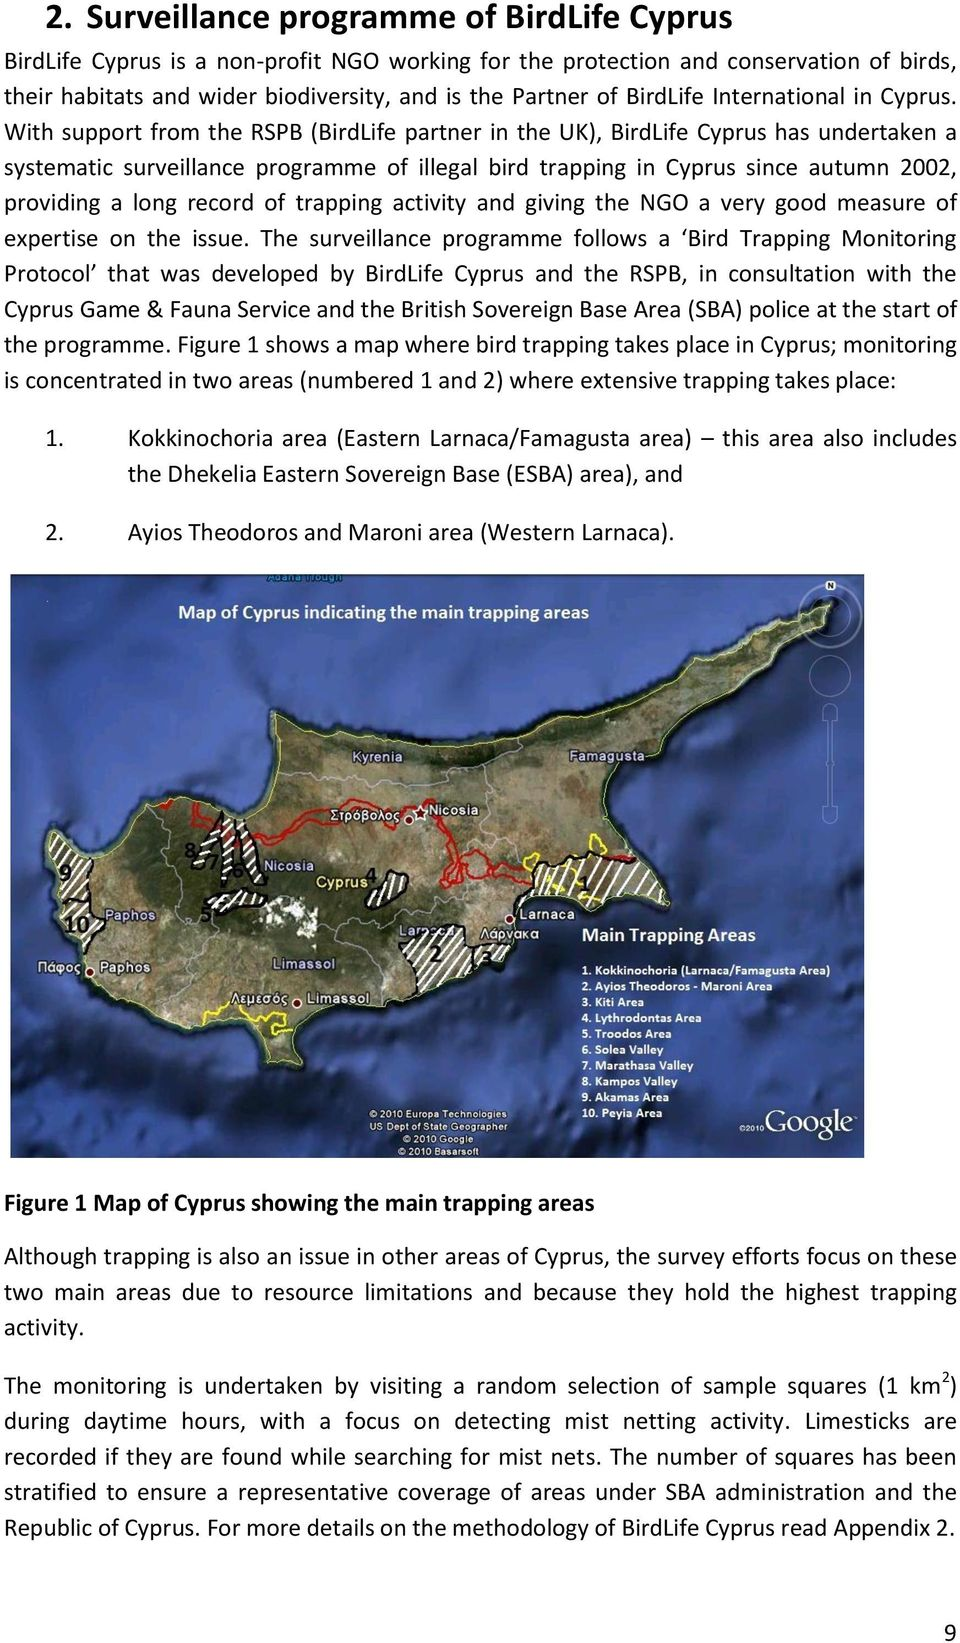 With support from the RSPB (BirdLife partner in the UK), BirdLife Cyprus has undertaken a systematic surveillance programme of illegal bird trapping in Cyprus since autumn 2002, providing a long